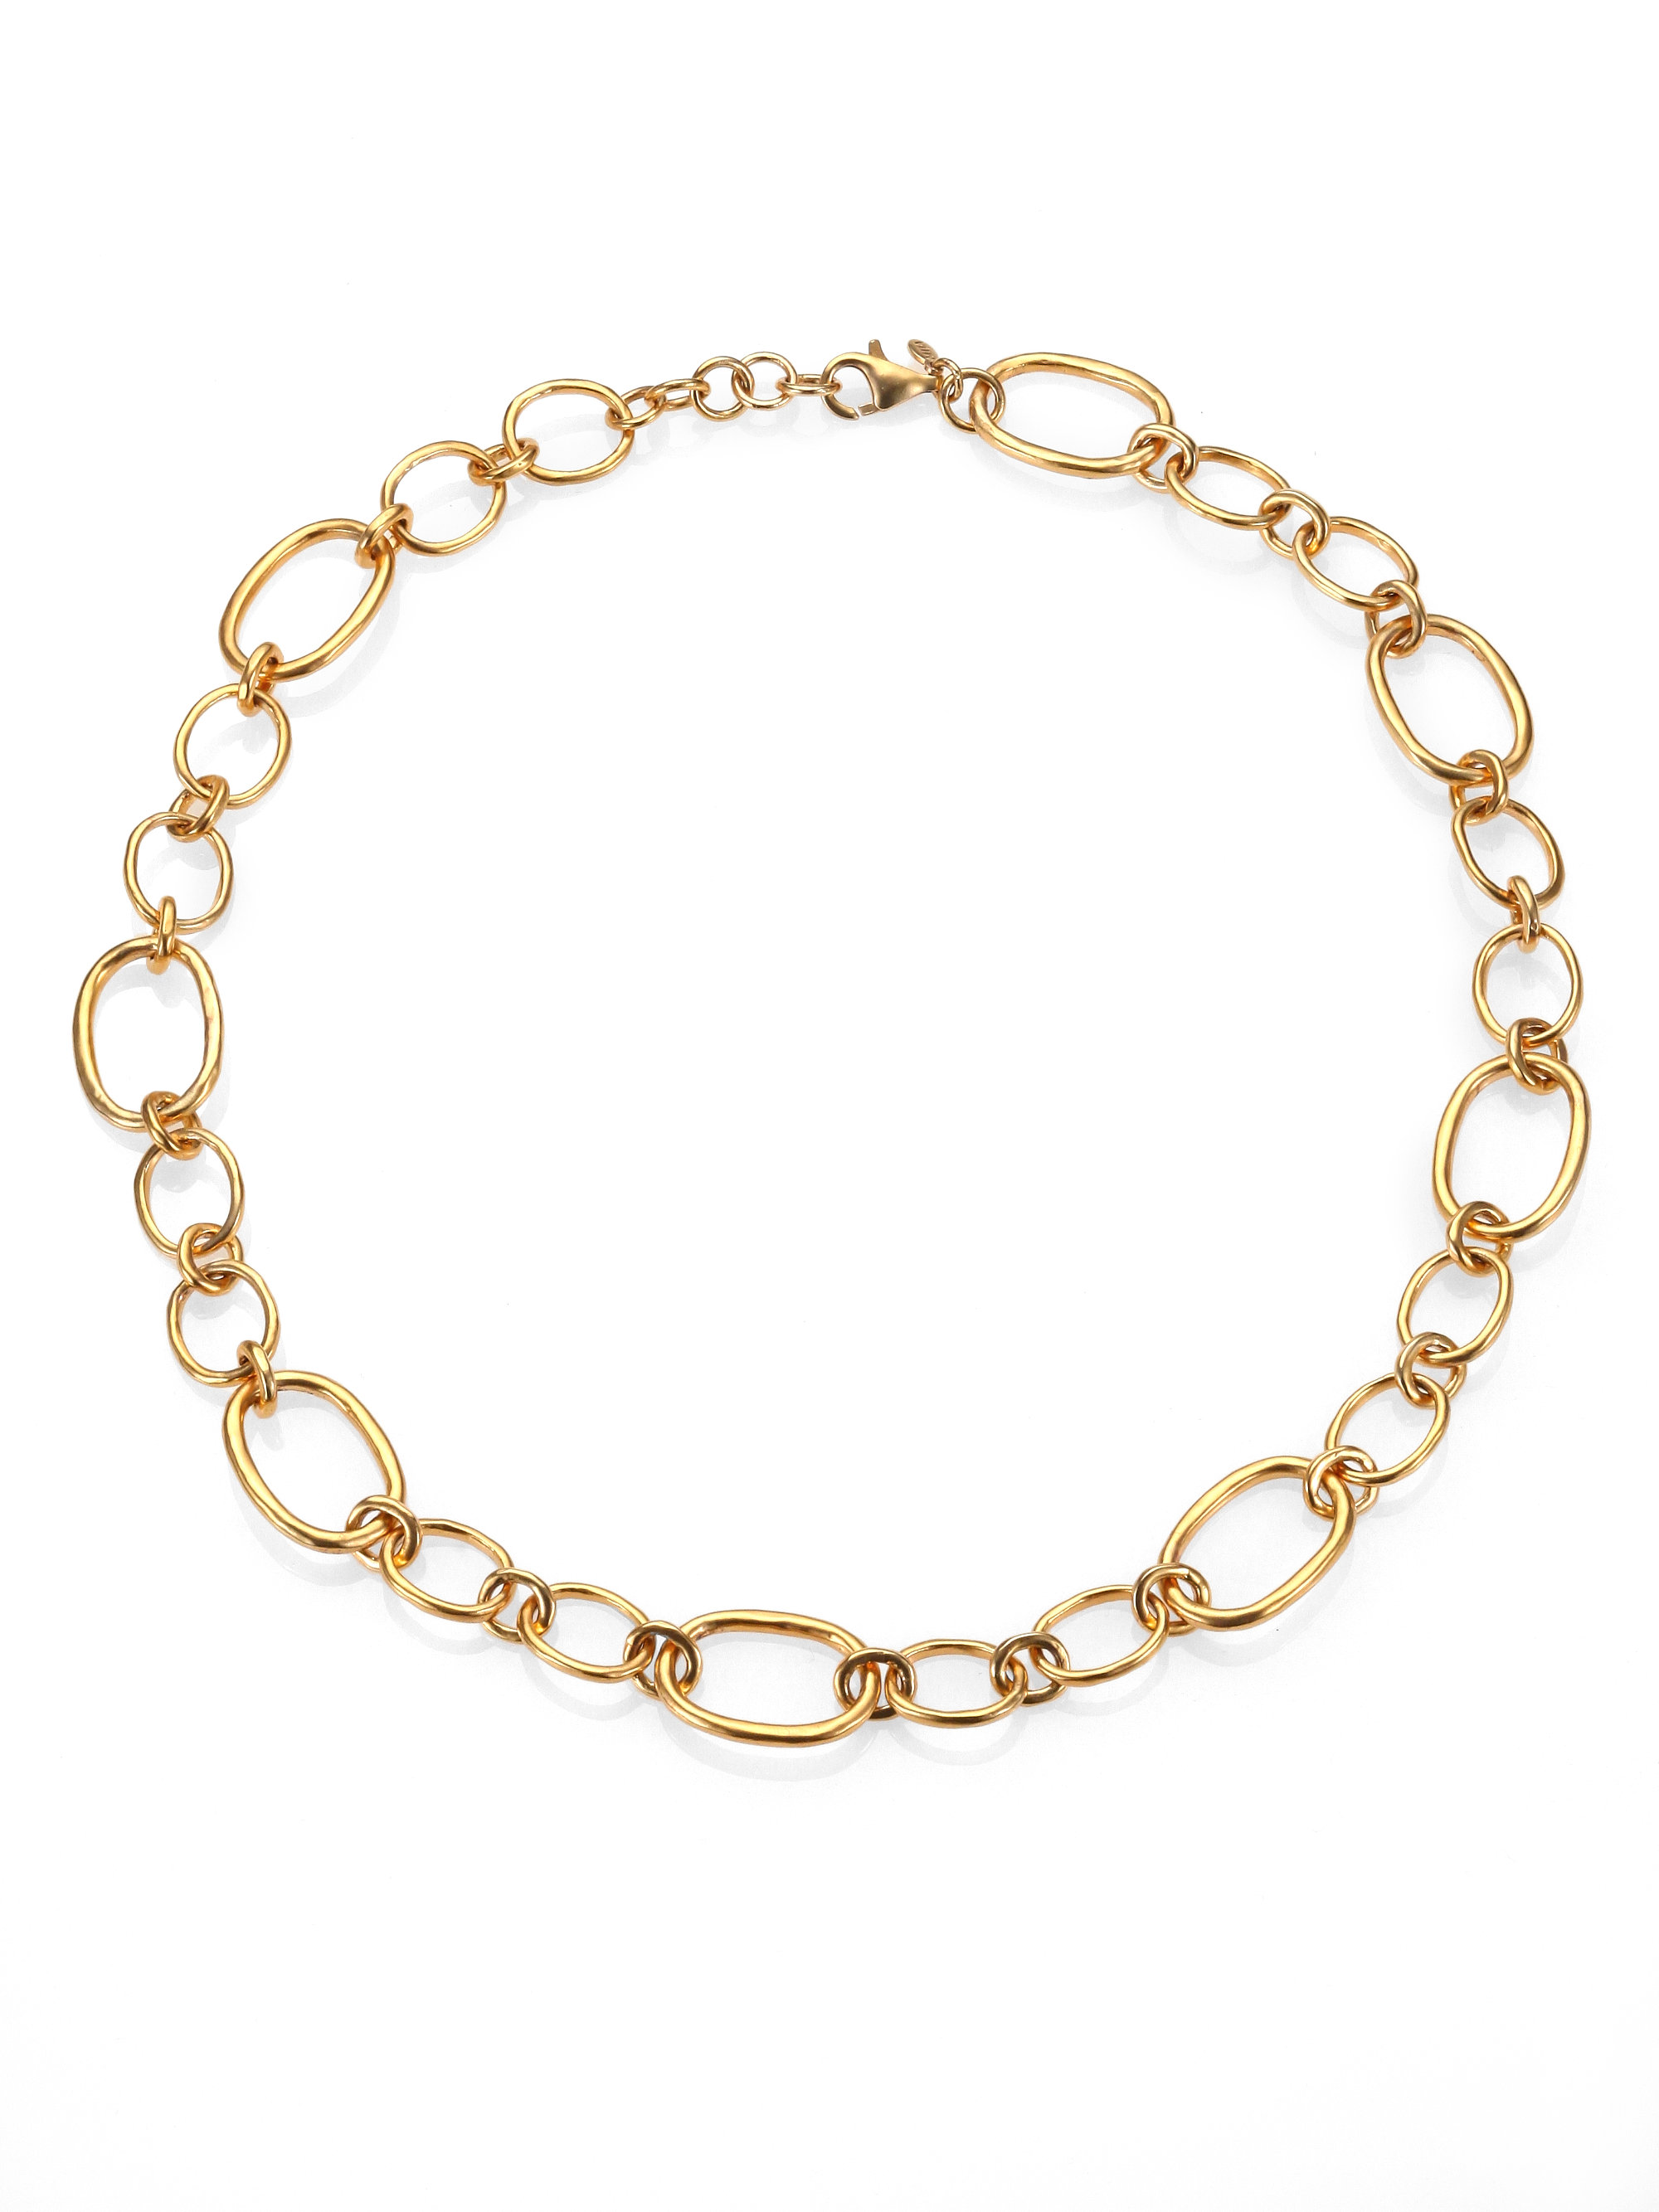 chain watches overstock gold double today necklace in jewelry eternity tone link oval product free open three shipping